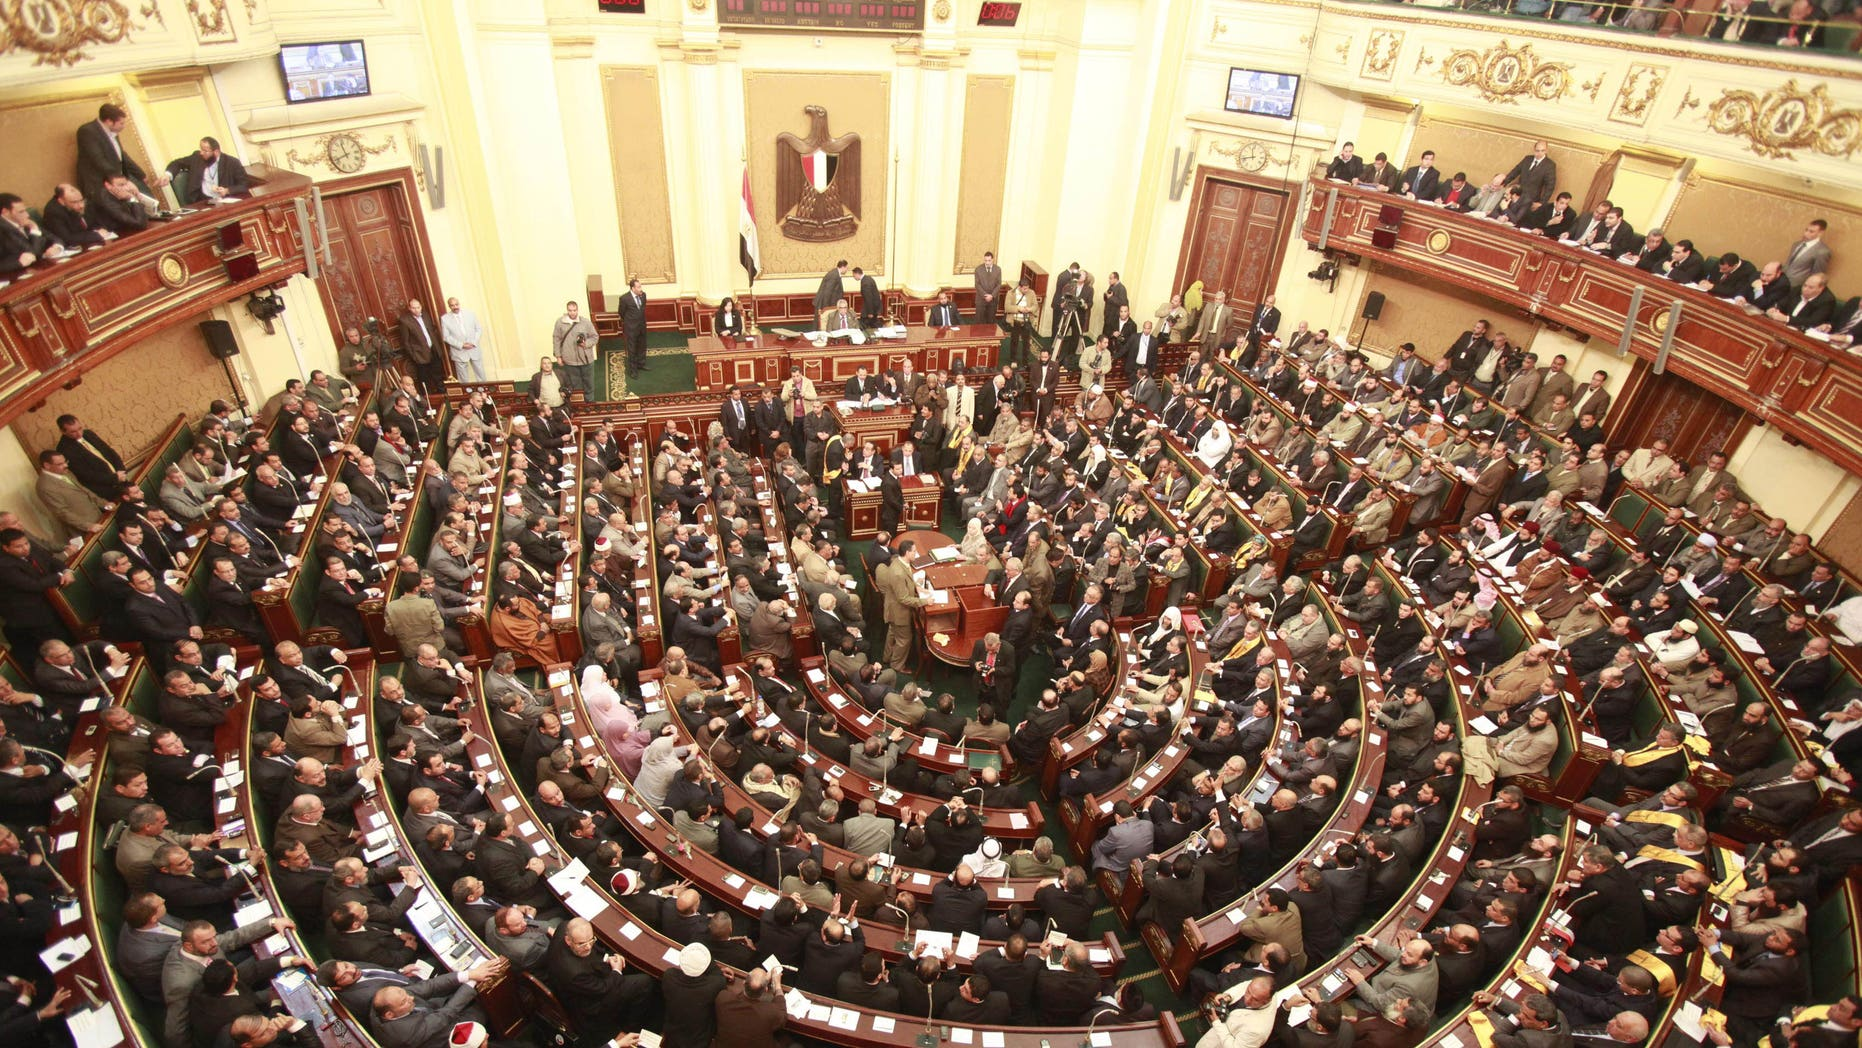 Jan. 23, 2012: In this file photo, a general view of  the first Egyptian parliament session after the revolution that ousted former President Hosni Mubarak, in Cairo, Egypt.